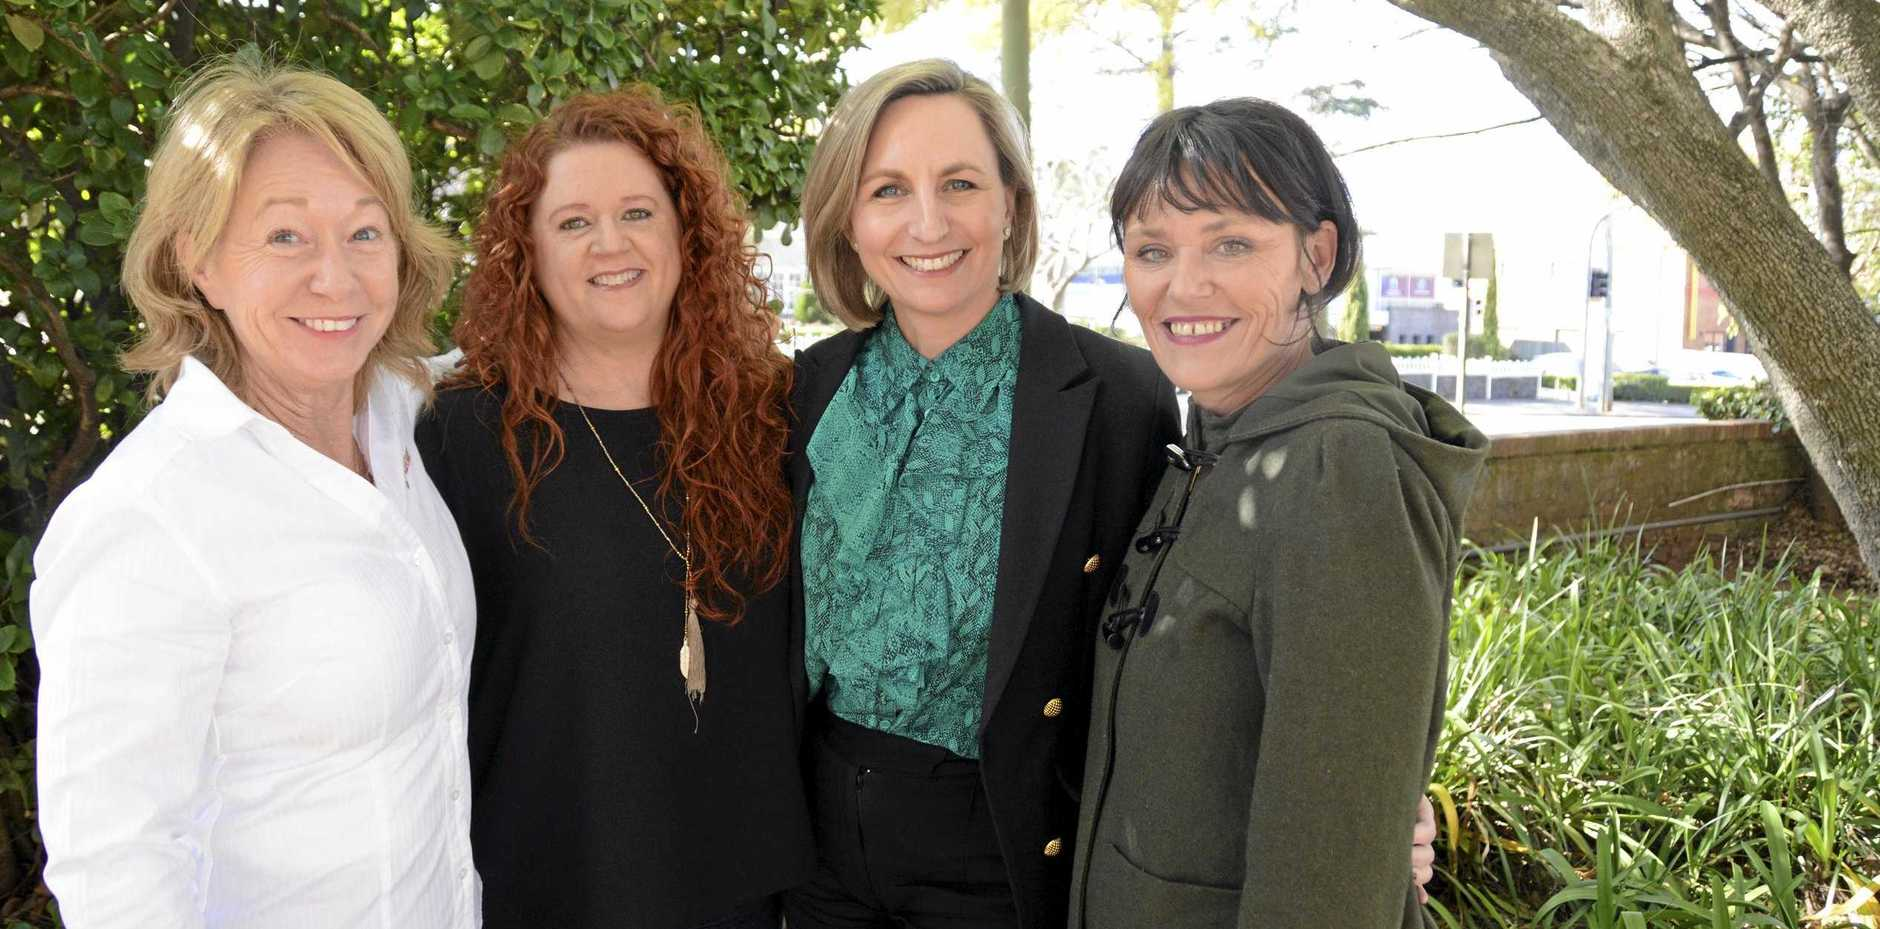 HELPING HANDS: The Toowoomba Women's Collective leadership team (from left) Megan O'Shannessy, CEO Amanda Dalton, Jacqui Armstrong and Susy Wenitong raised more than $65,000 to open a drop-in service centre for homeless women.